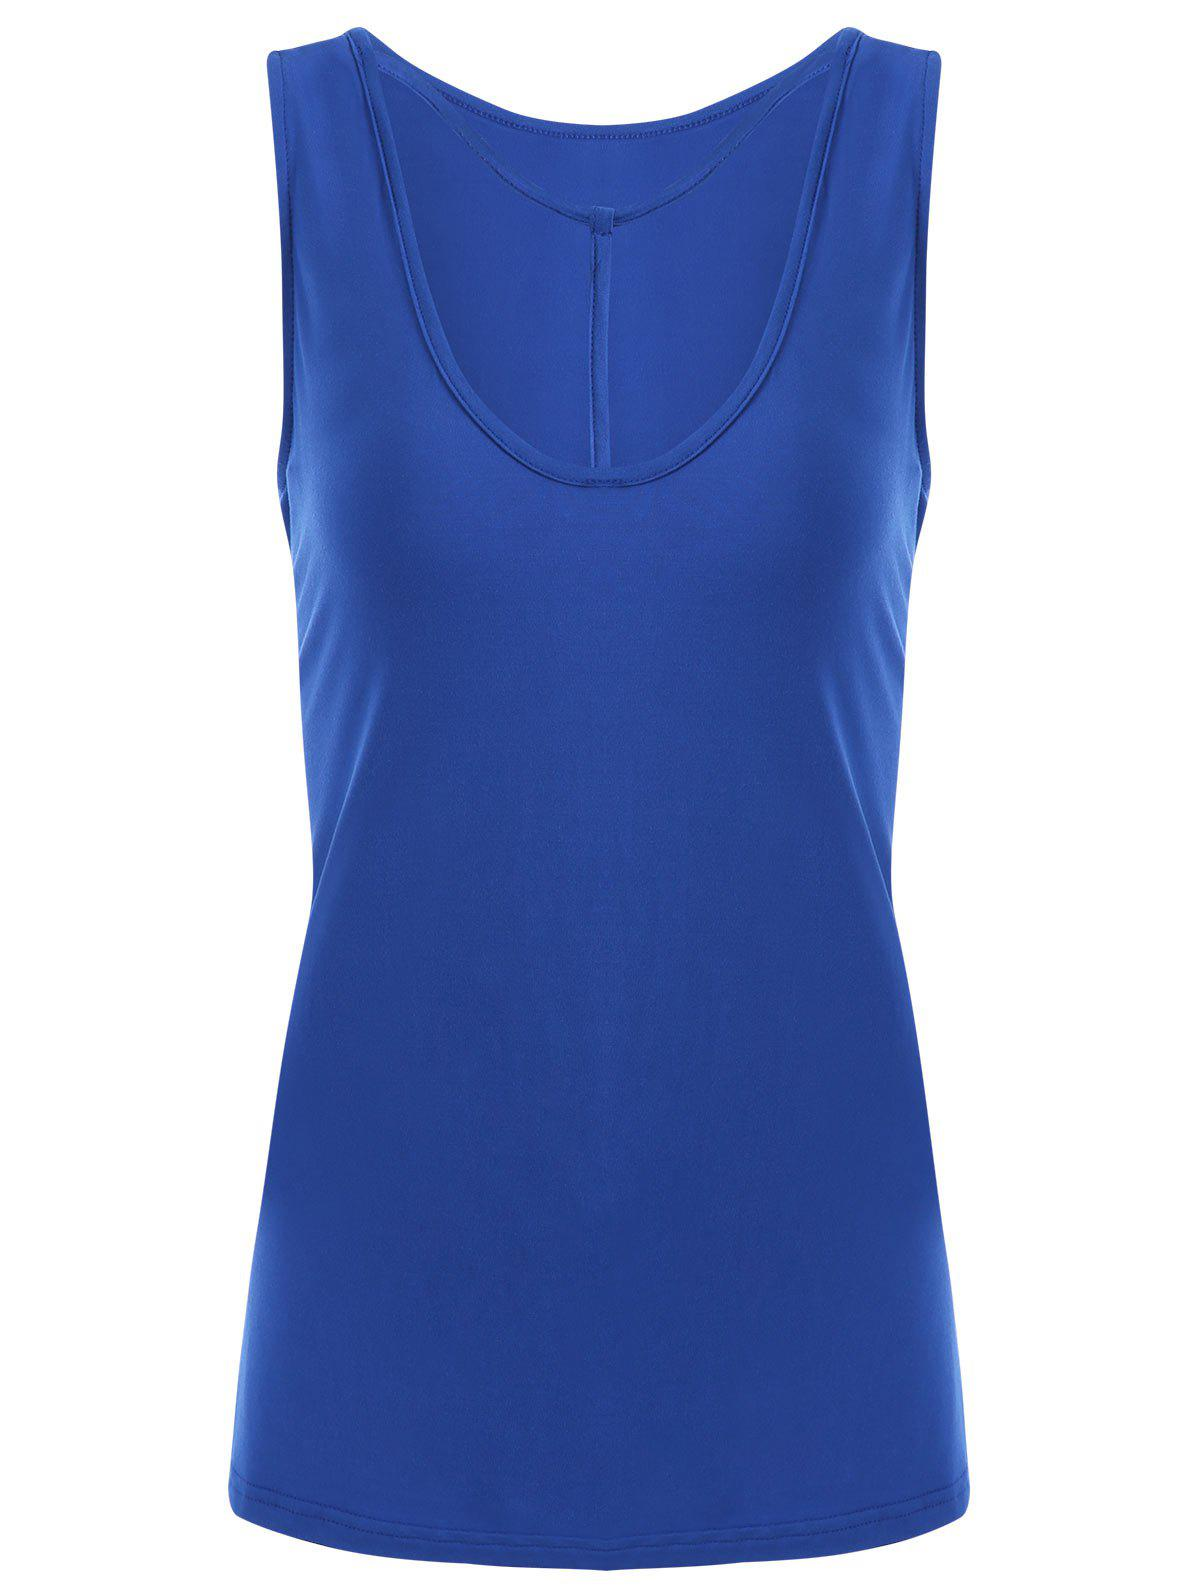 Y-strap Casual Tank Top - Bleu XL